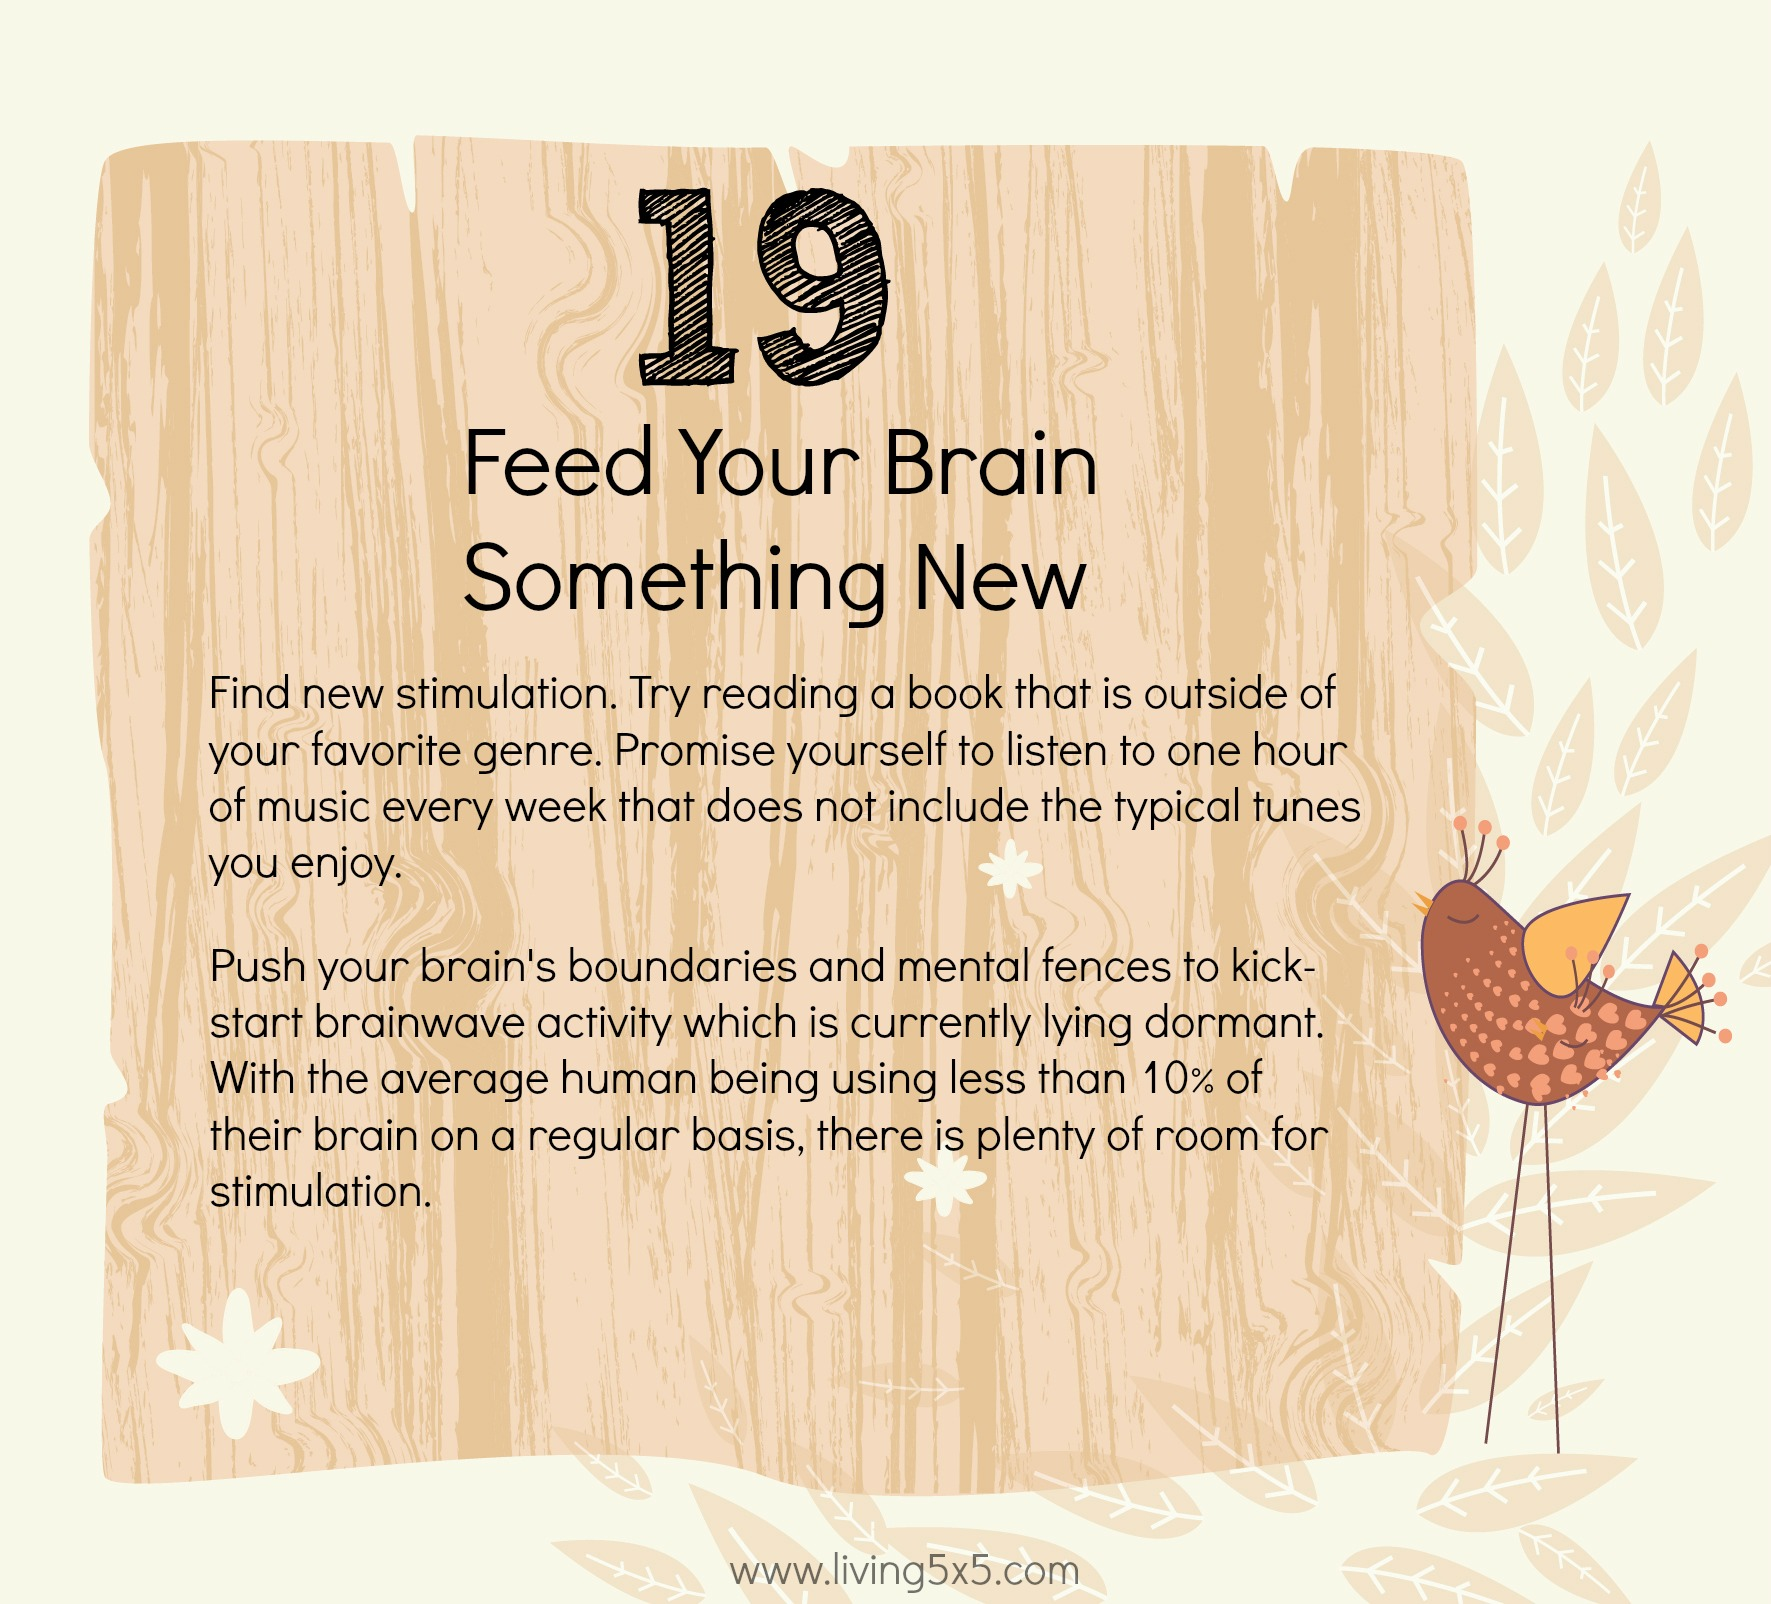 21 Ways To Step Outside Of Your Comfort Zone: #19 Feed your brain something new.